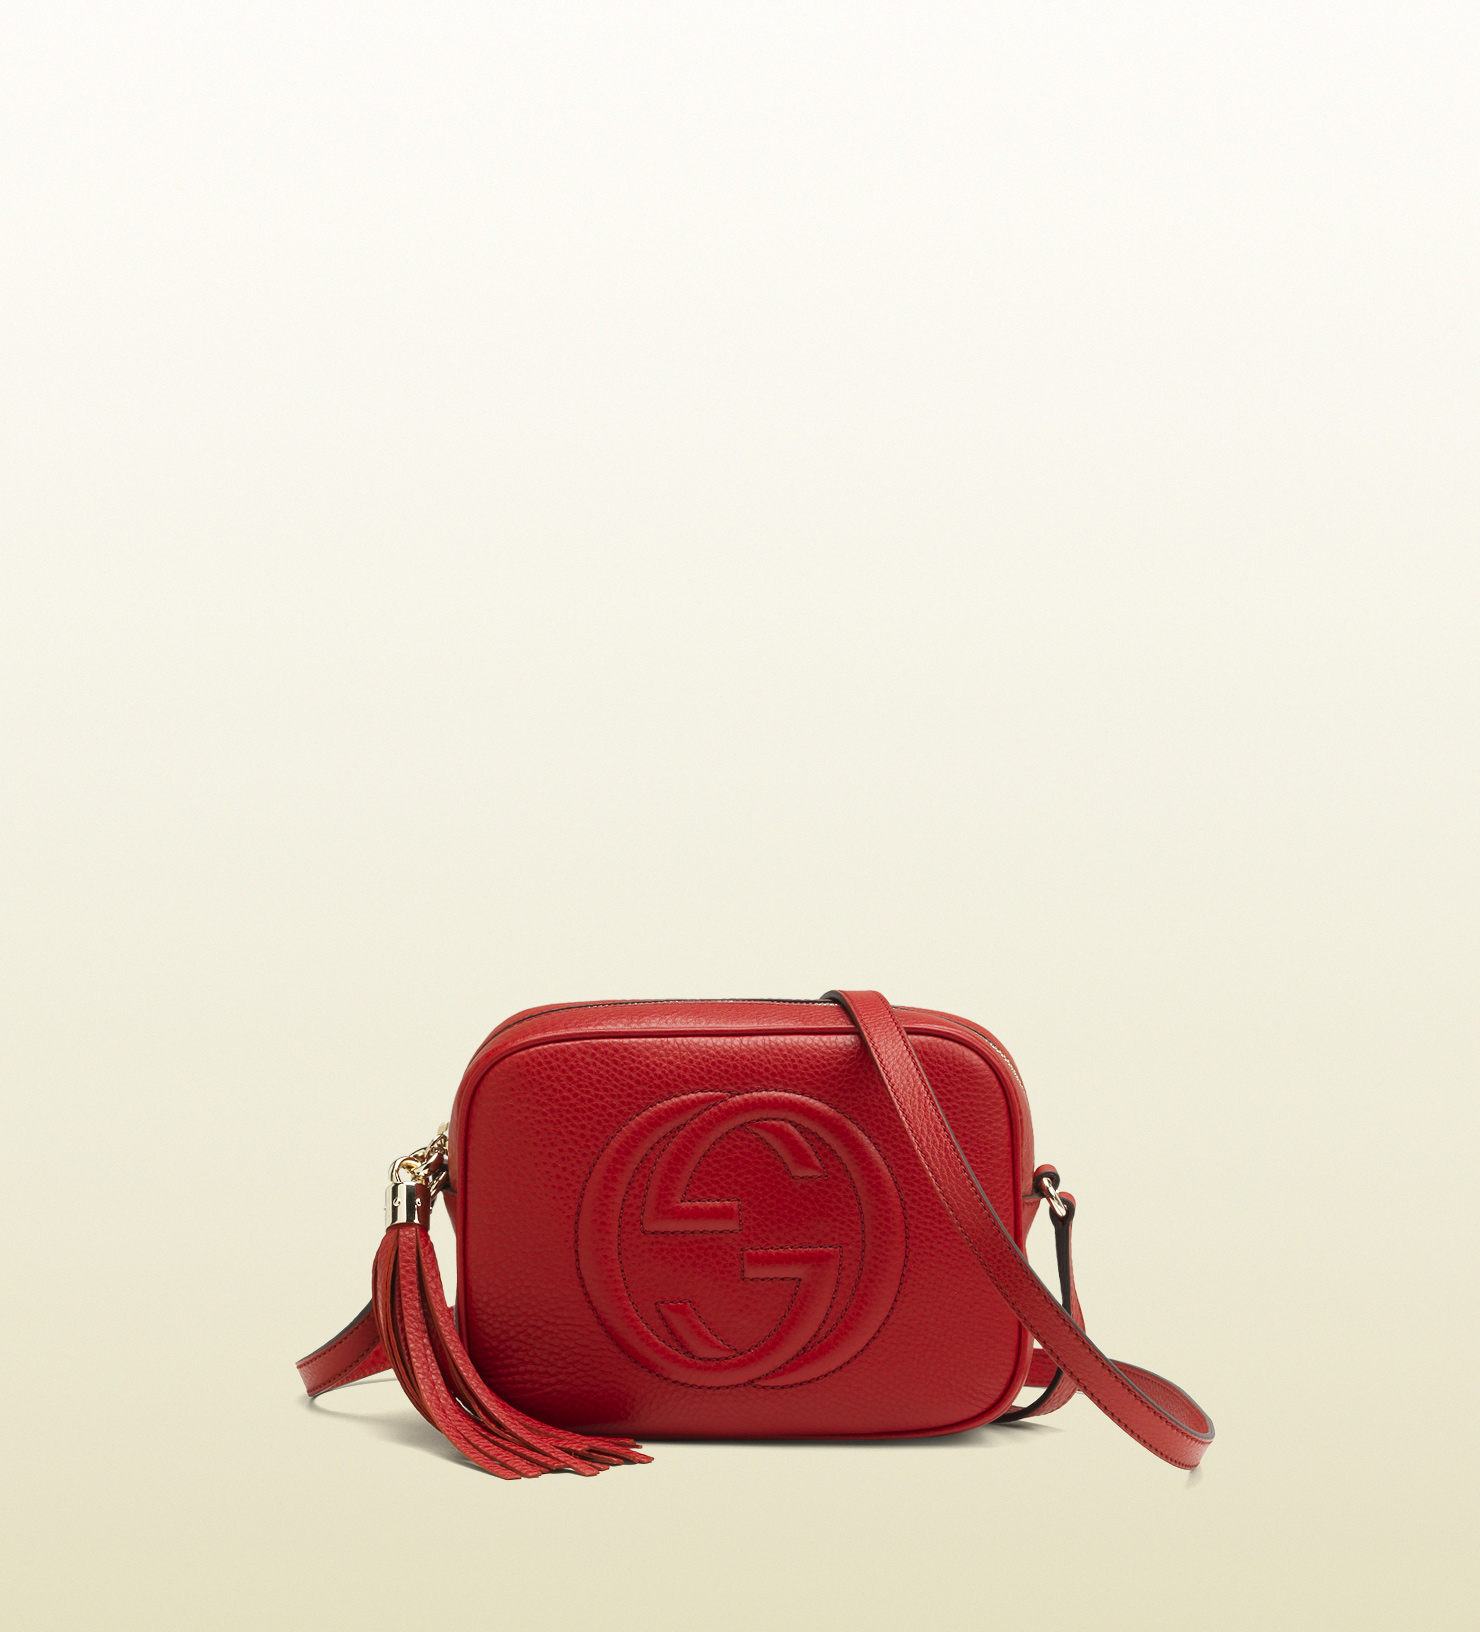 ec34093ceccdd Lyst - Gucci Soho Leather Disco Bag in Red